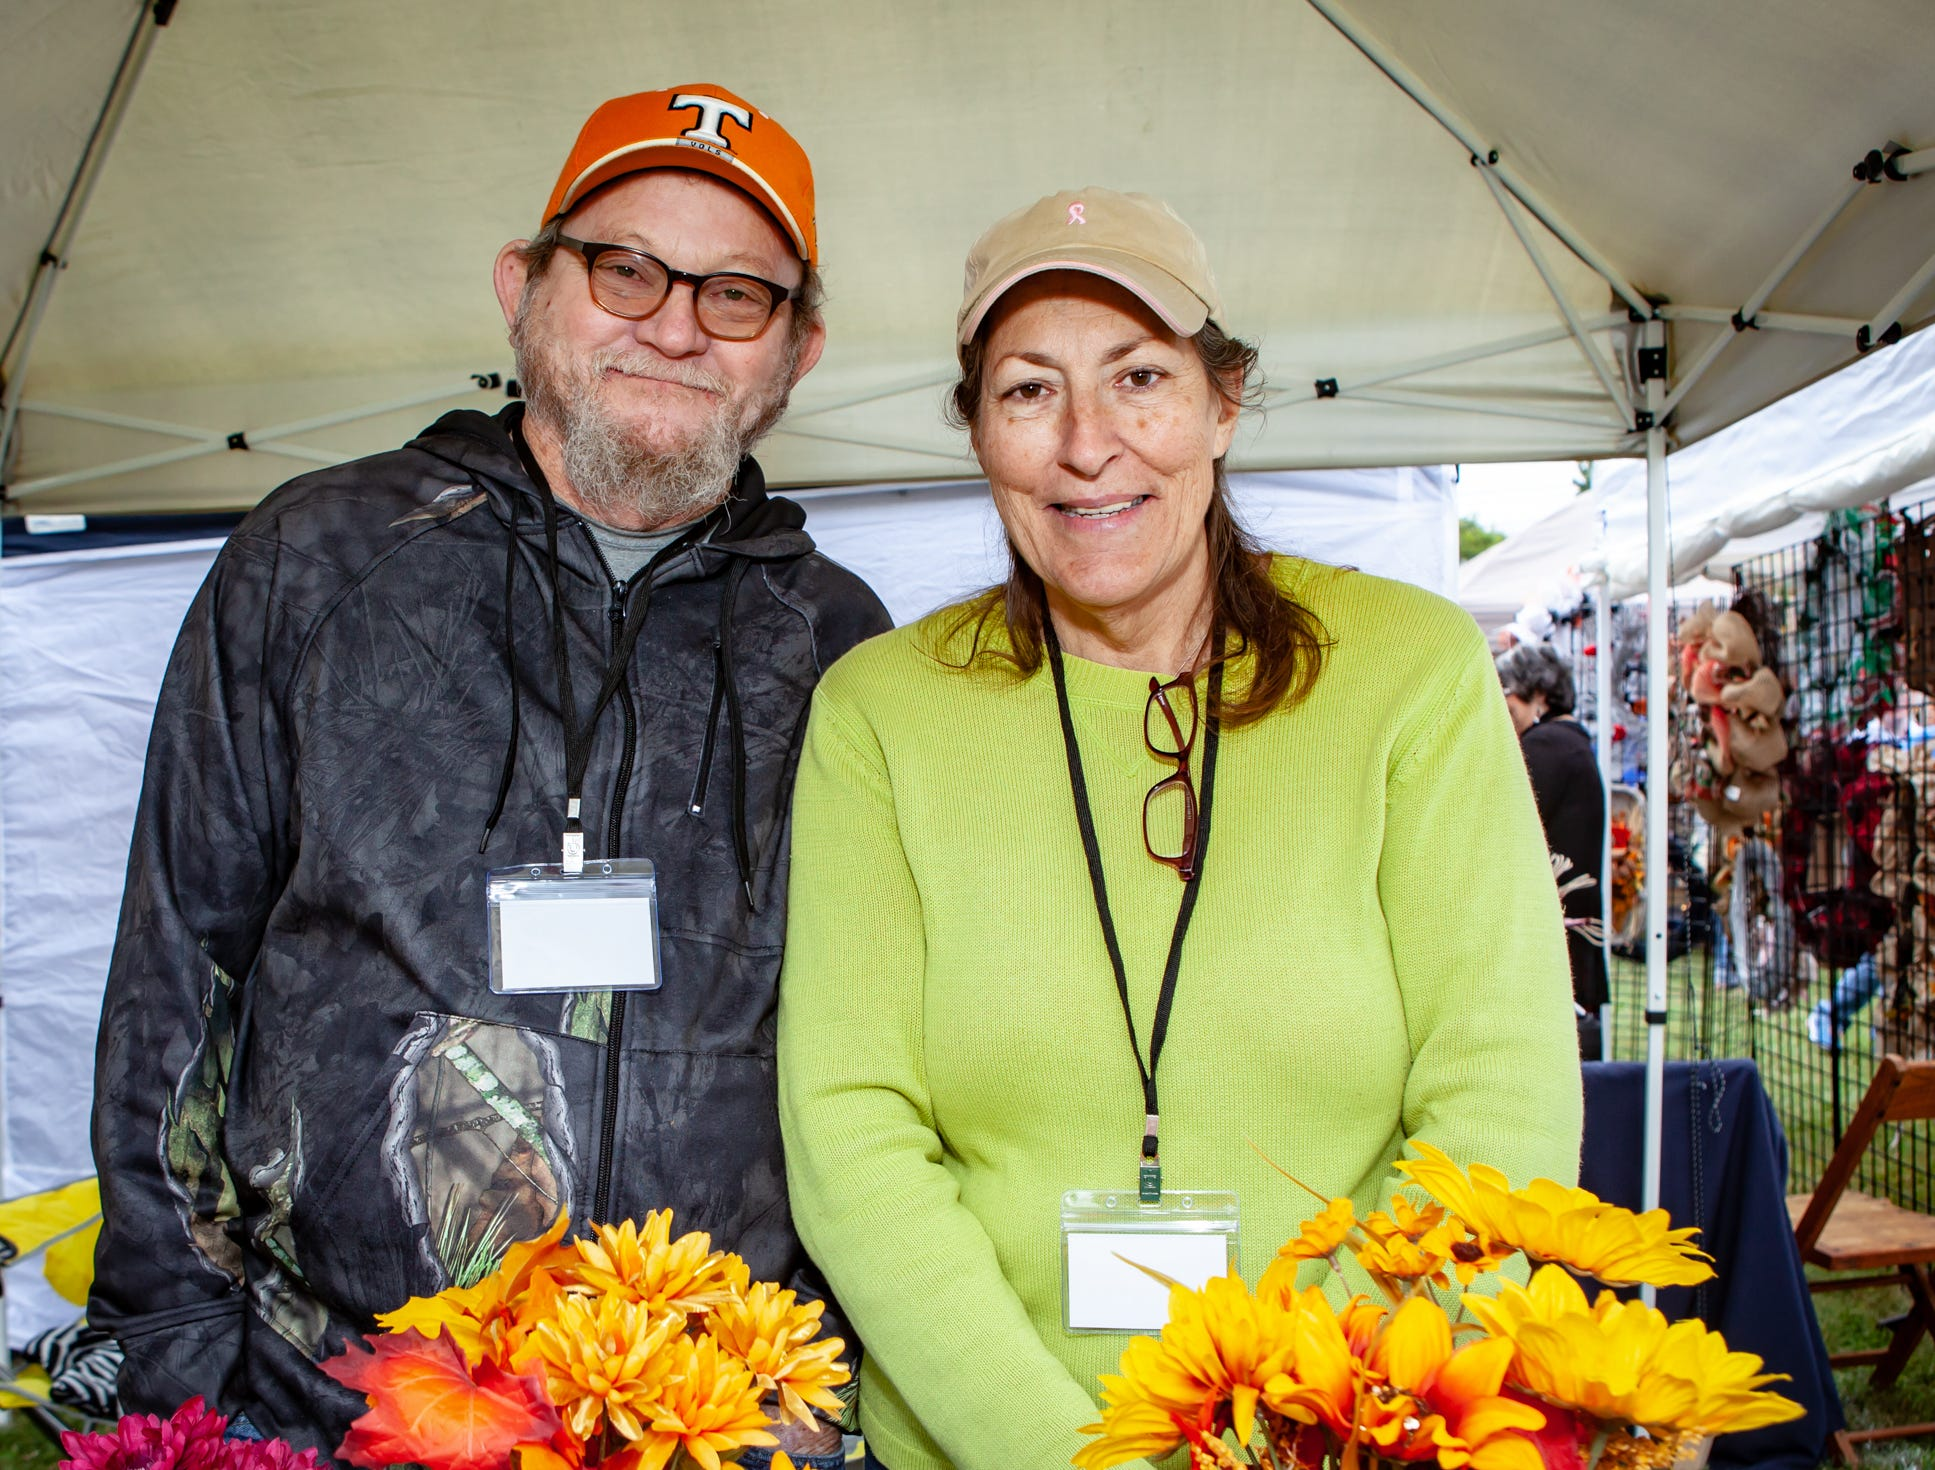 David and Cathy Tucker at The Gathering at Milton's fall market and craft fair on Saturday, Oct. 13, 2018.